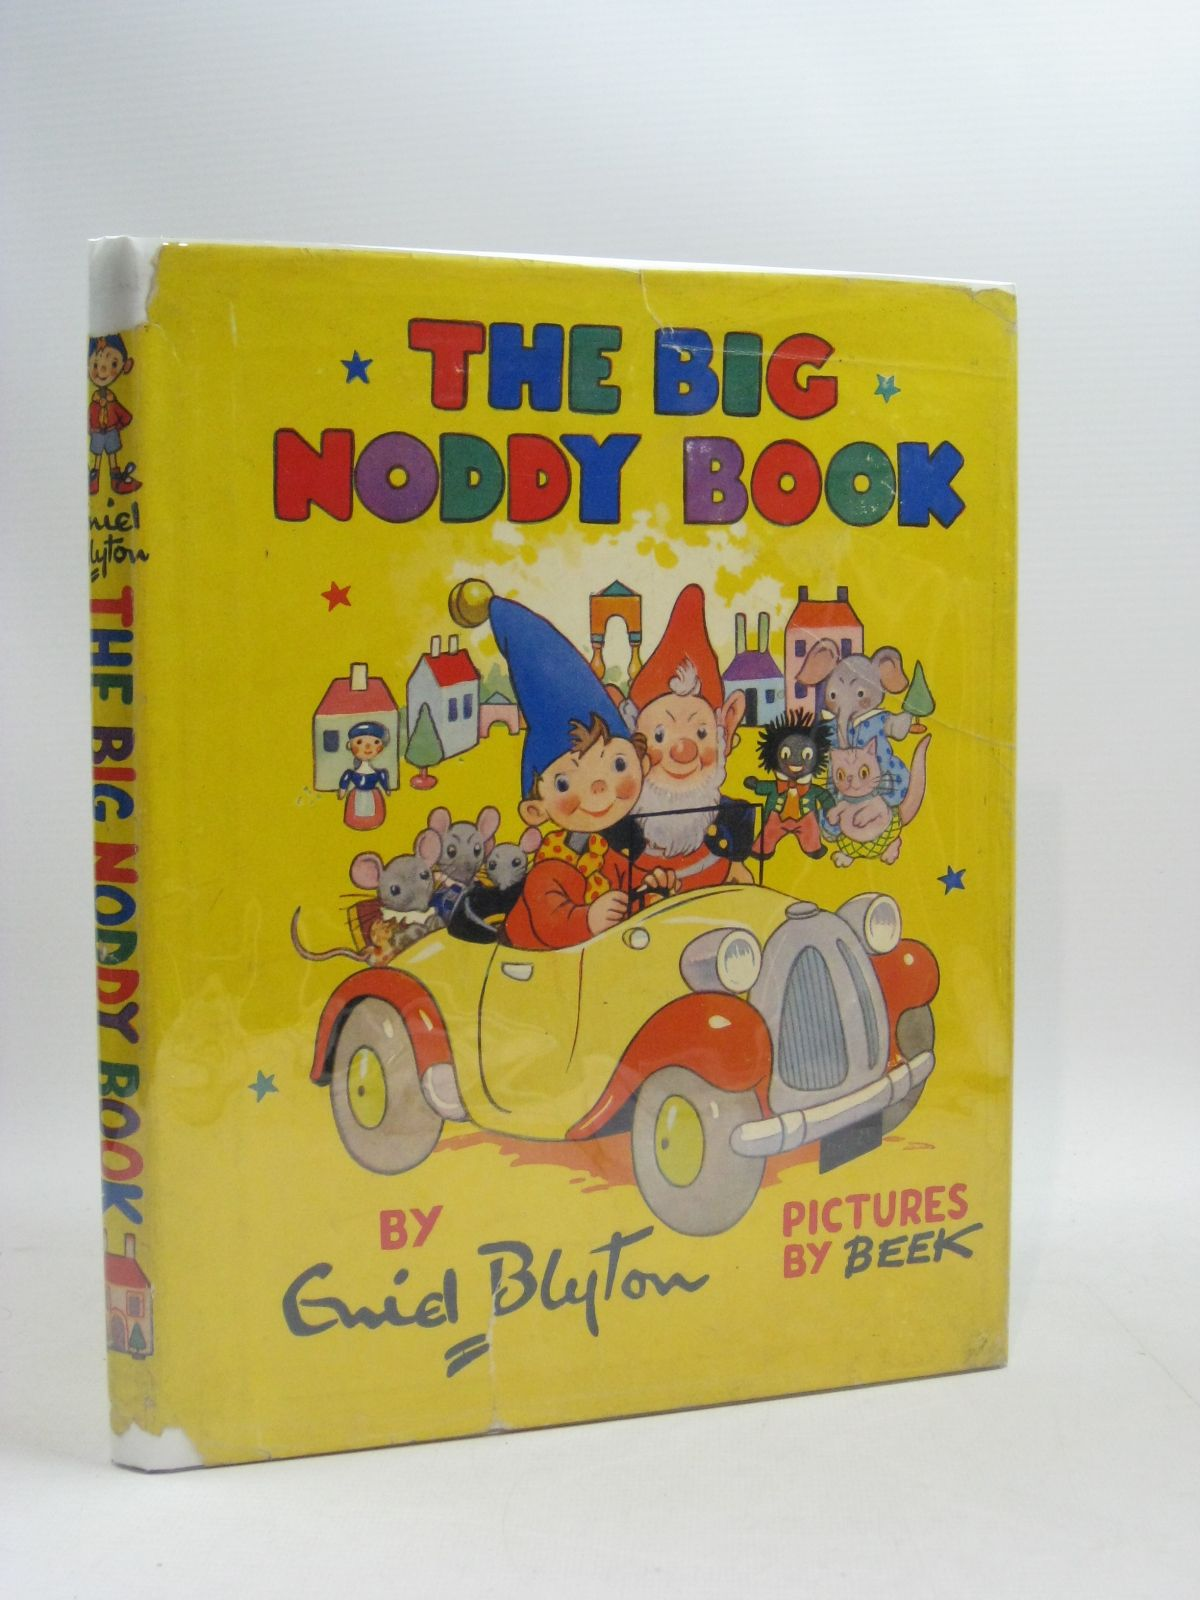 Cover of THE BIG NODDY BOOK by Enid Blyton